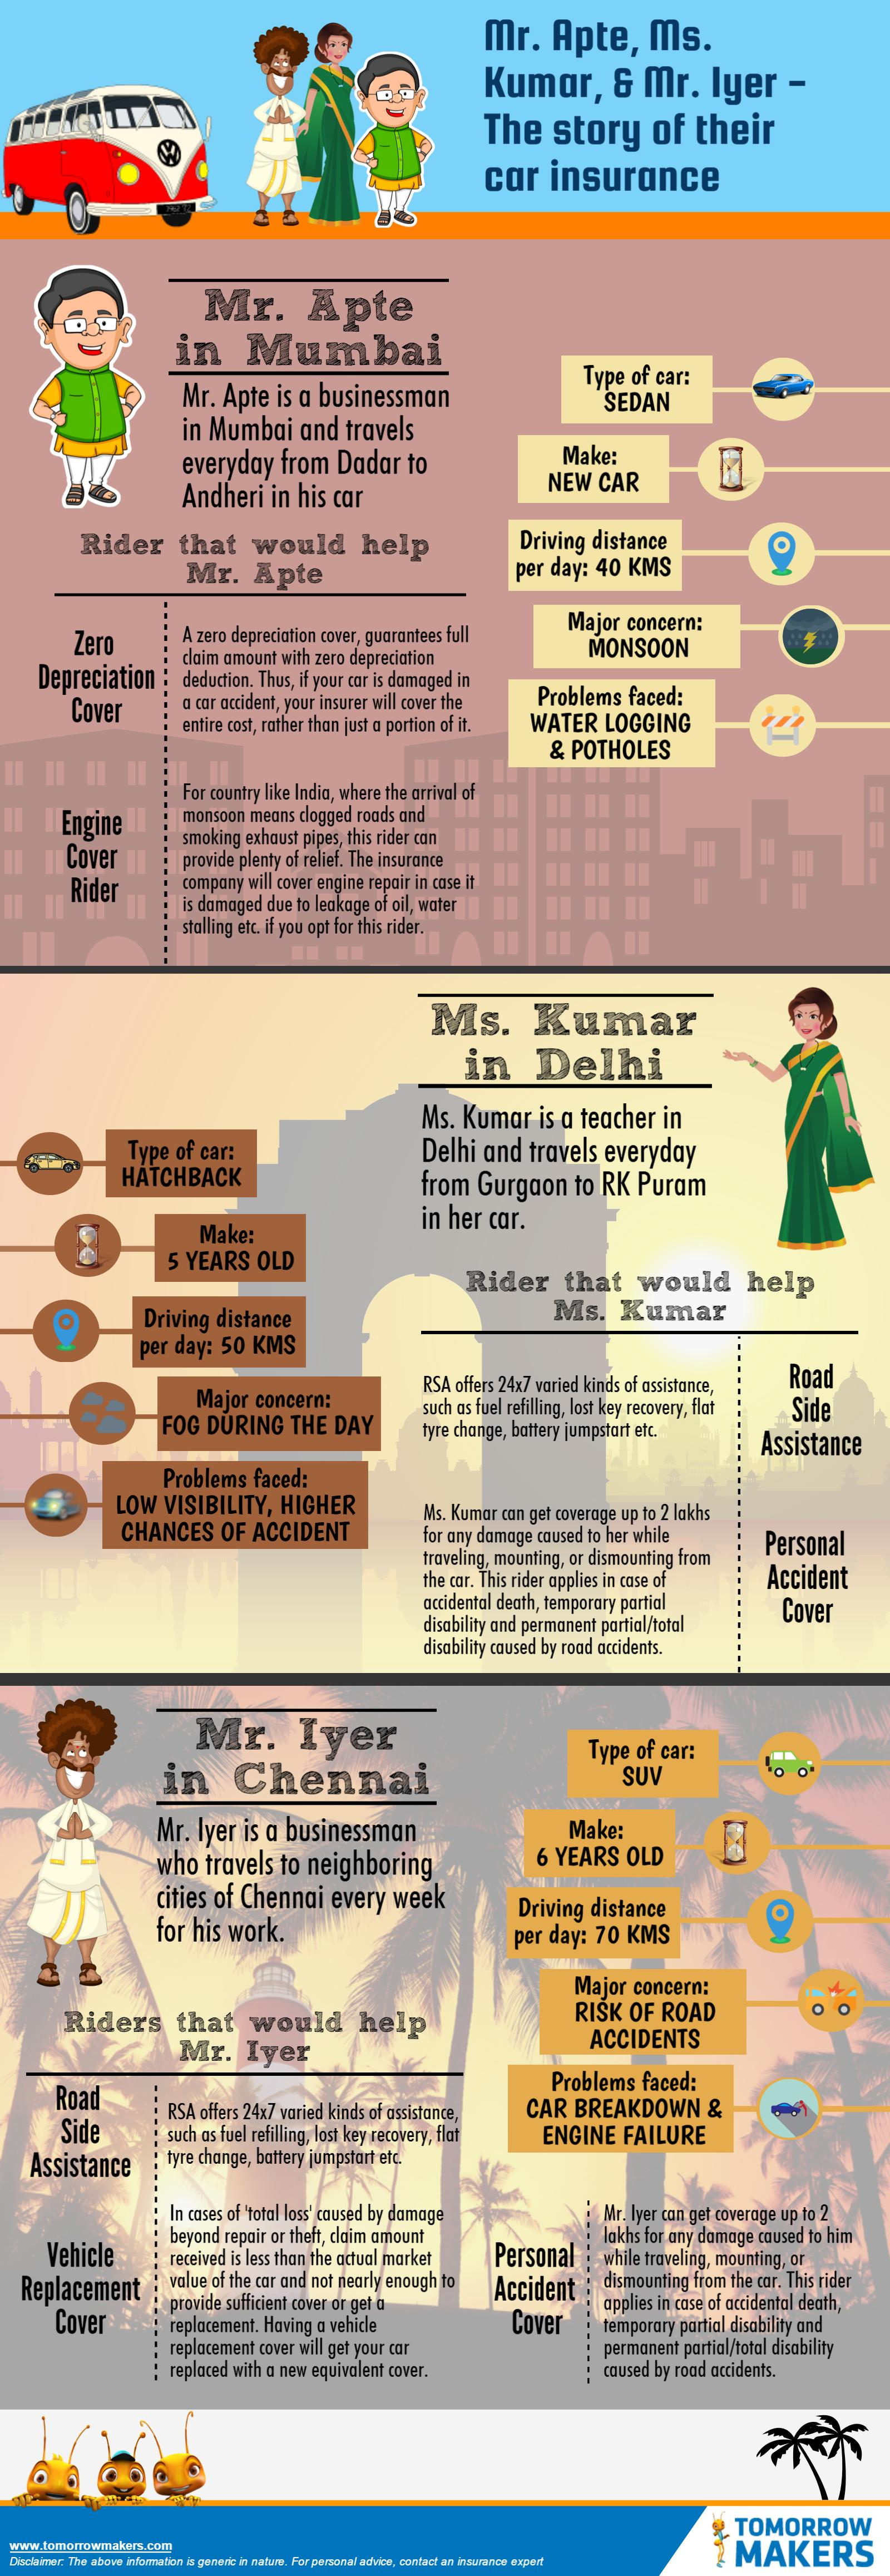 mr-apte-ms-sharma-mr-iyer-the-story-of-their-car-insurance-infographic